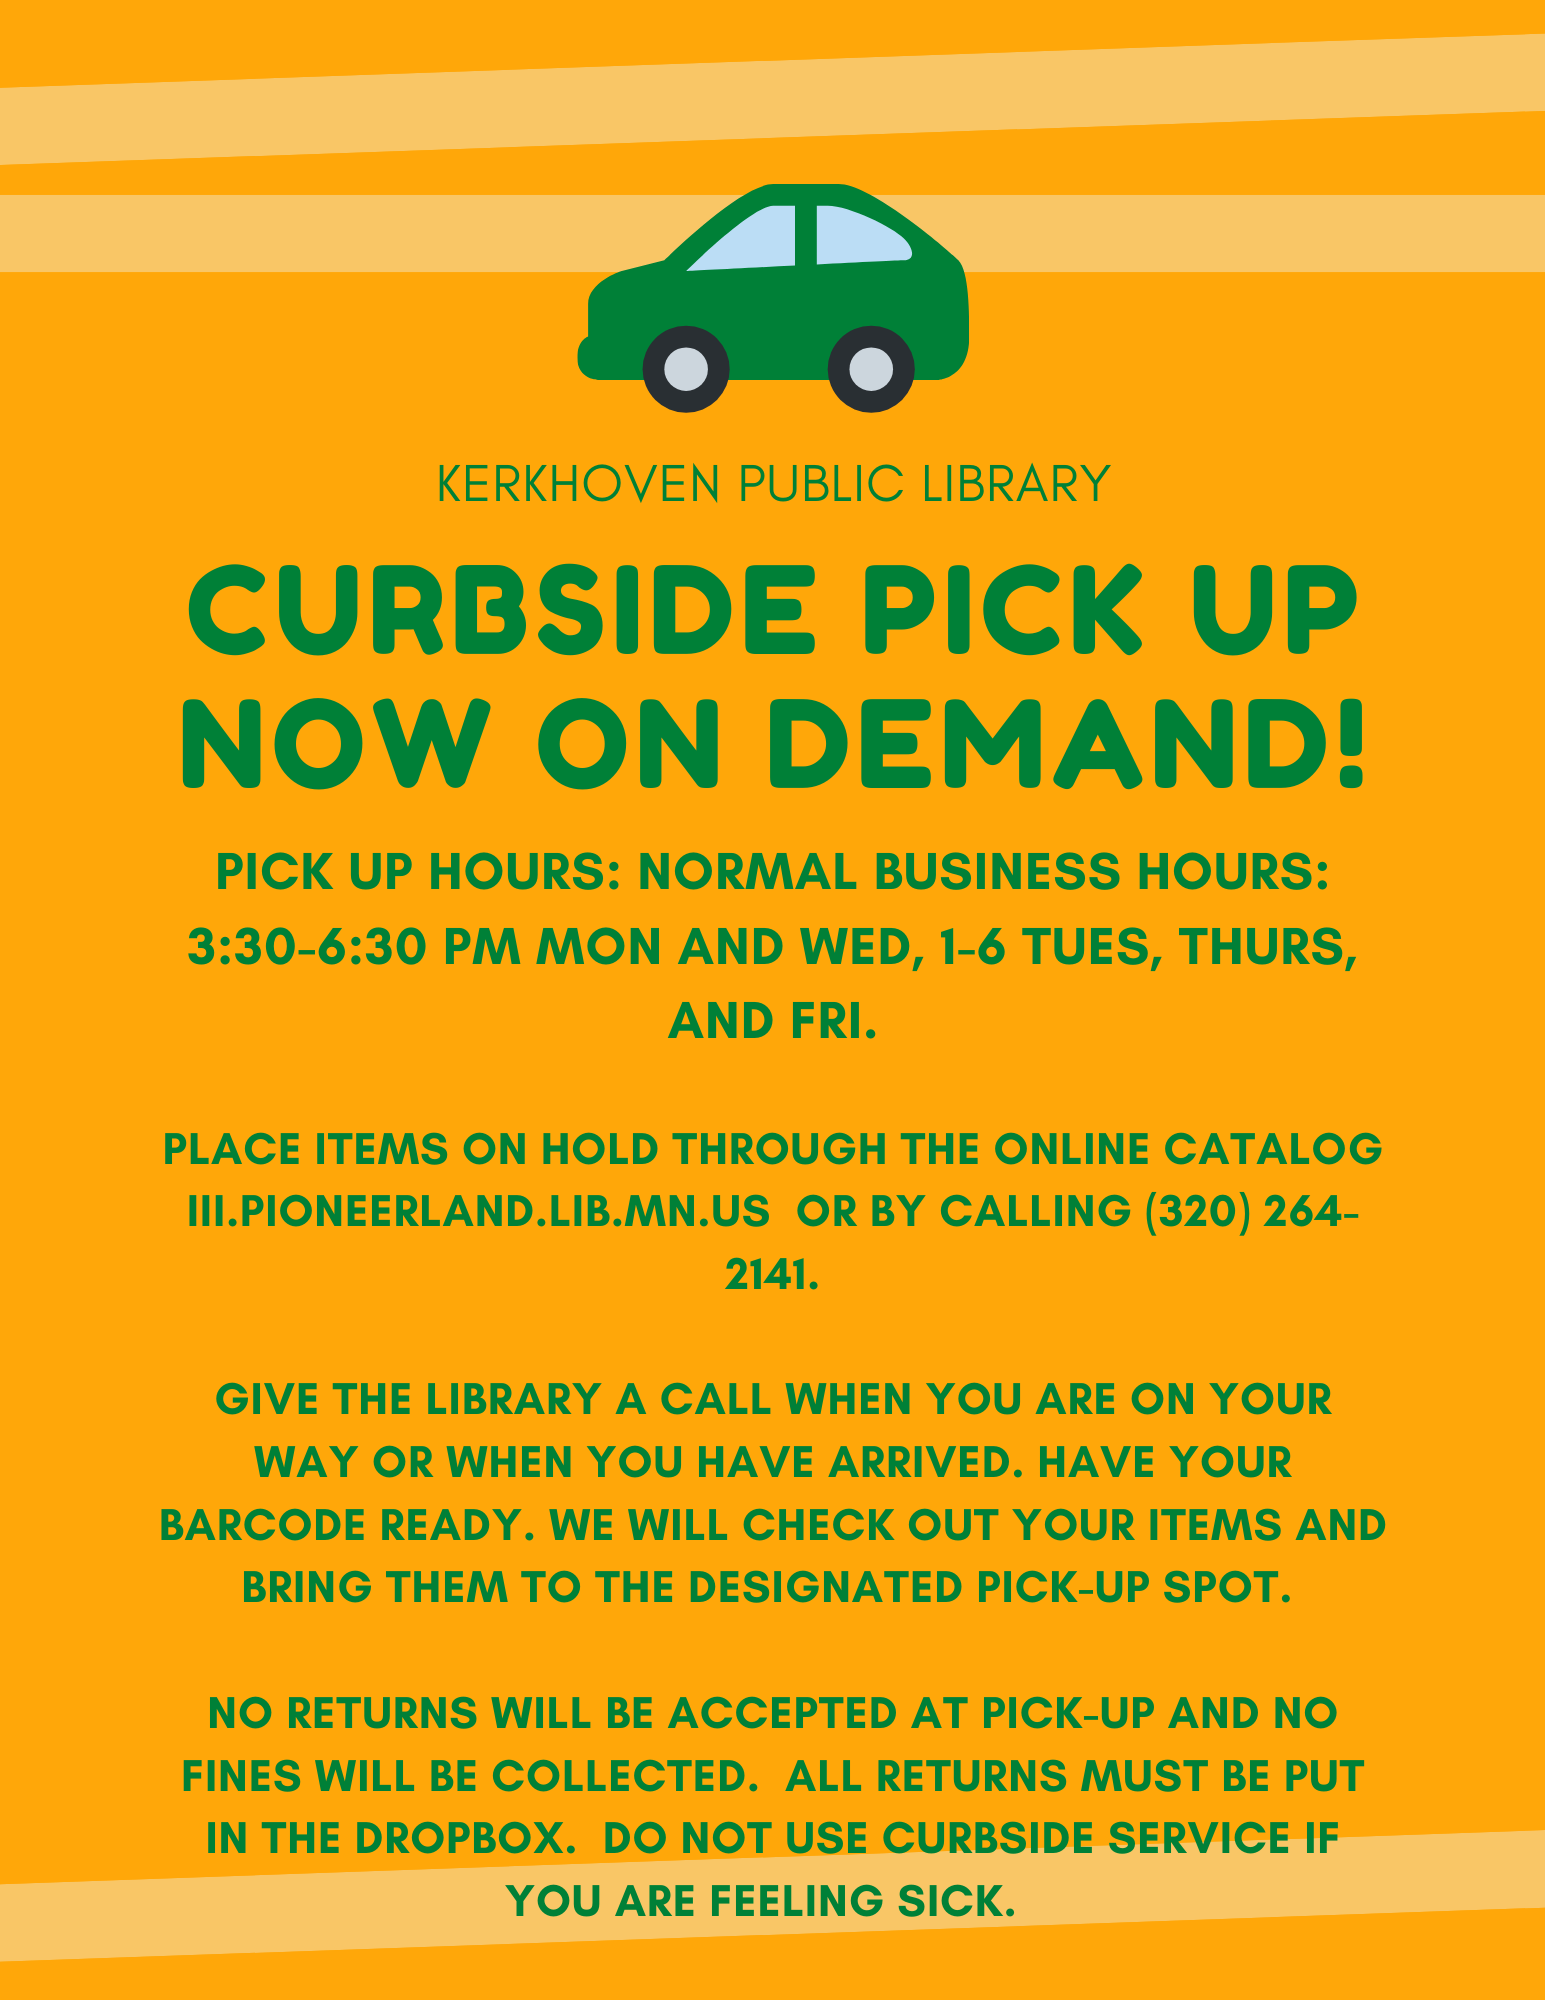 We are now offering no contact curbside pickup. Pickup hours are our normal business hours of Monday and Wednesday 3:30-6:30 pm and Tuesday, Thursday, and Friday from 1-5 pm. You can place items on hold by calling 320-264-2141 or by going to our online catalog. No returns will be accepted at pick-up. They must be returned in the book drop. Do not use curbside services if you are sick in any way.